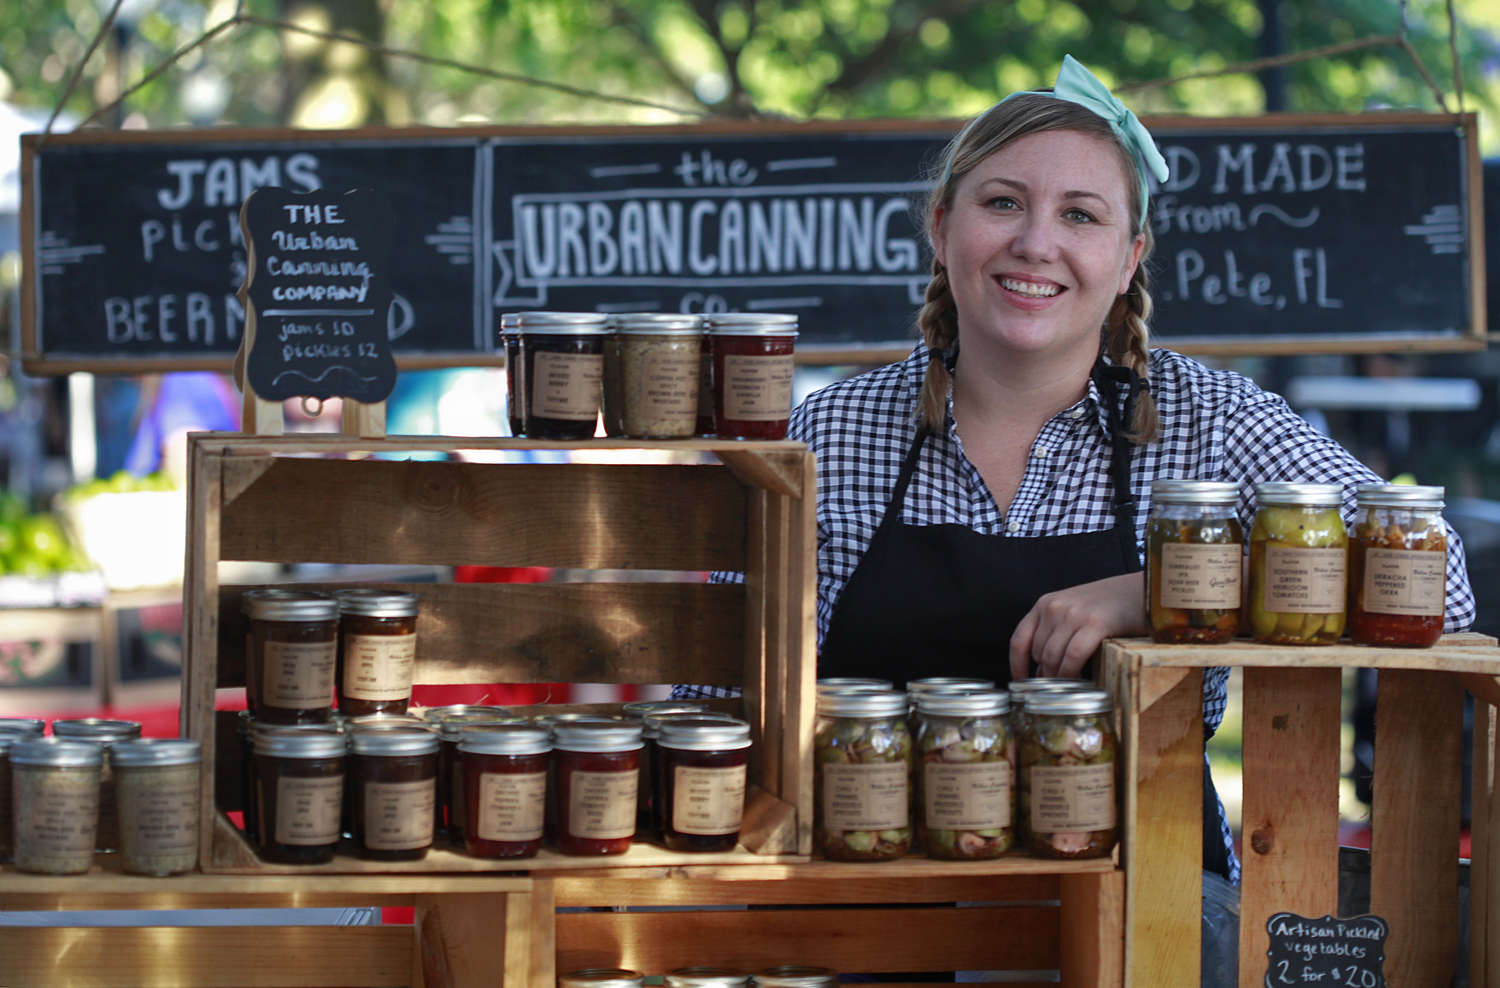 Illene Sofranko started the Urban Canning Company out of her kitchen. Using local ingredients, she cans jams, pickled vegetables and mustards in St. Petersburg to sell at outdoor markets and retailers. (LARA CERRI | Times)